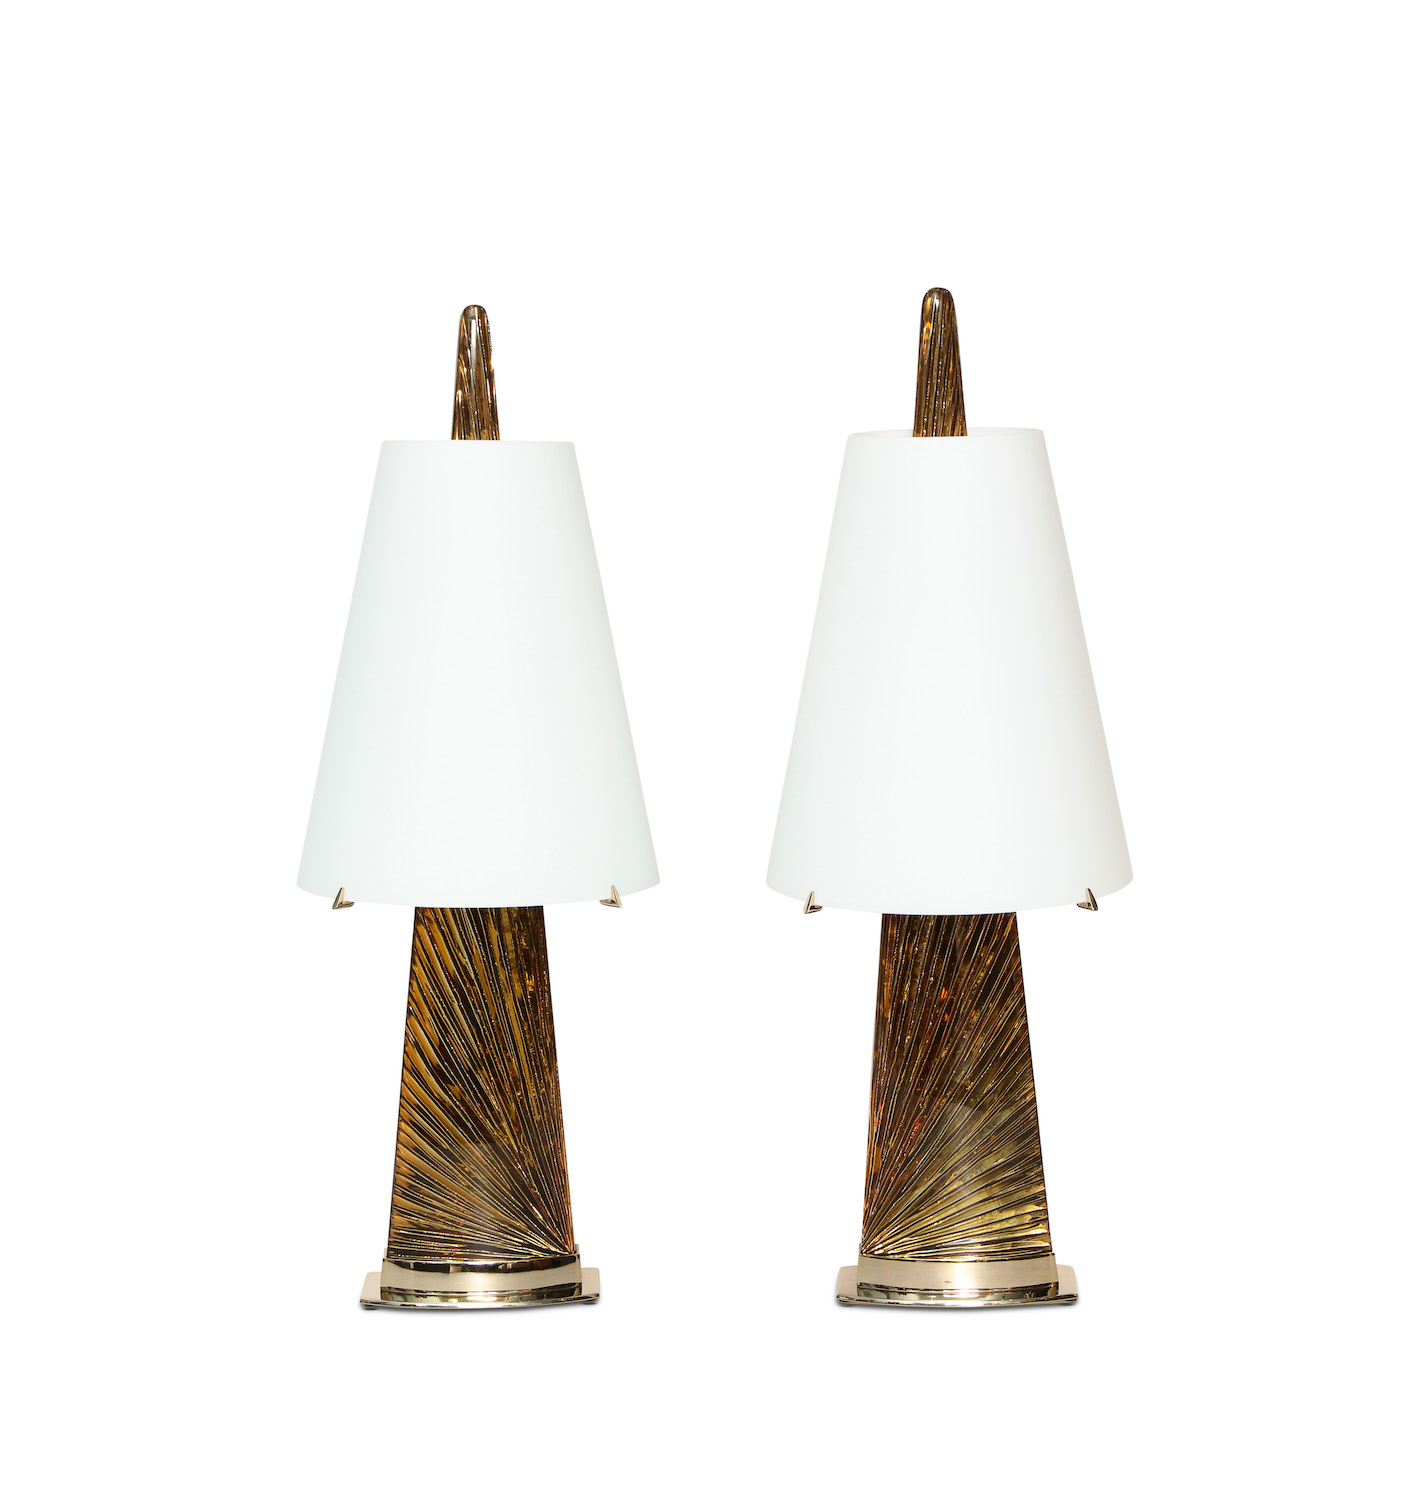 Ghiro Abisso Lamps 1.jpg